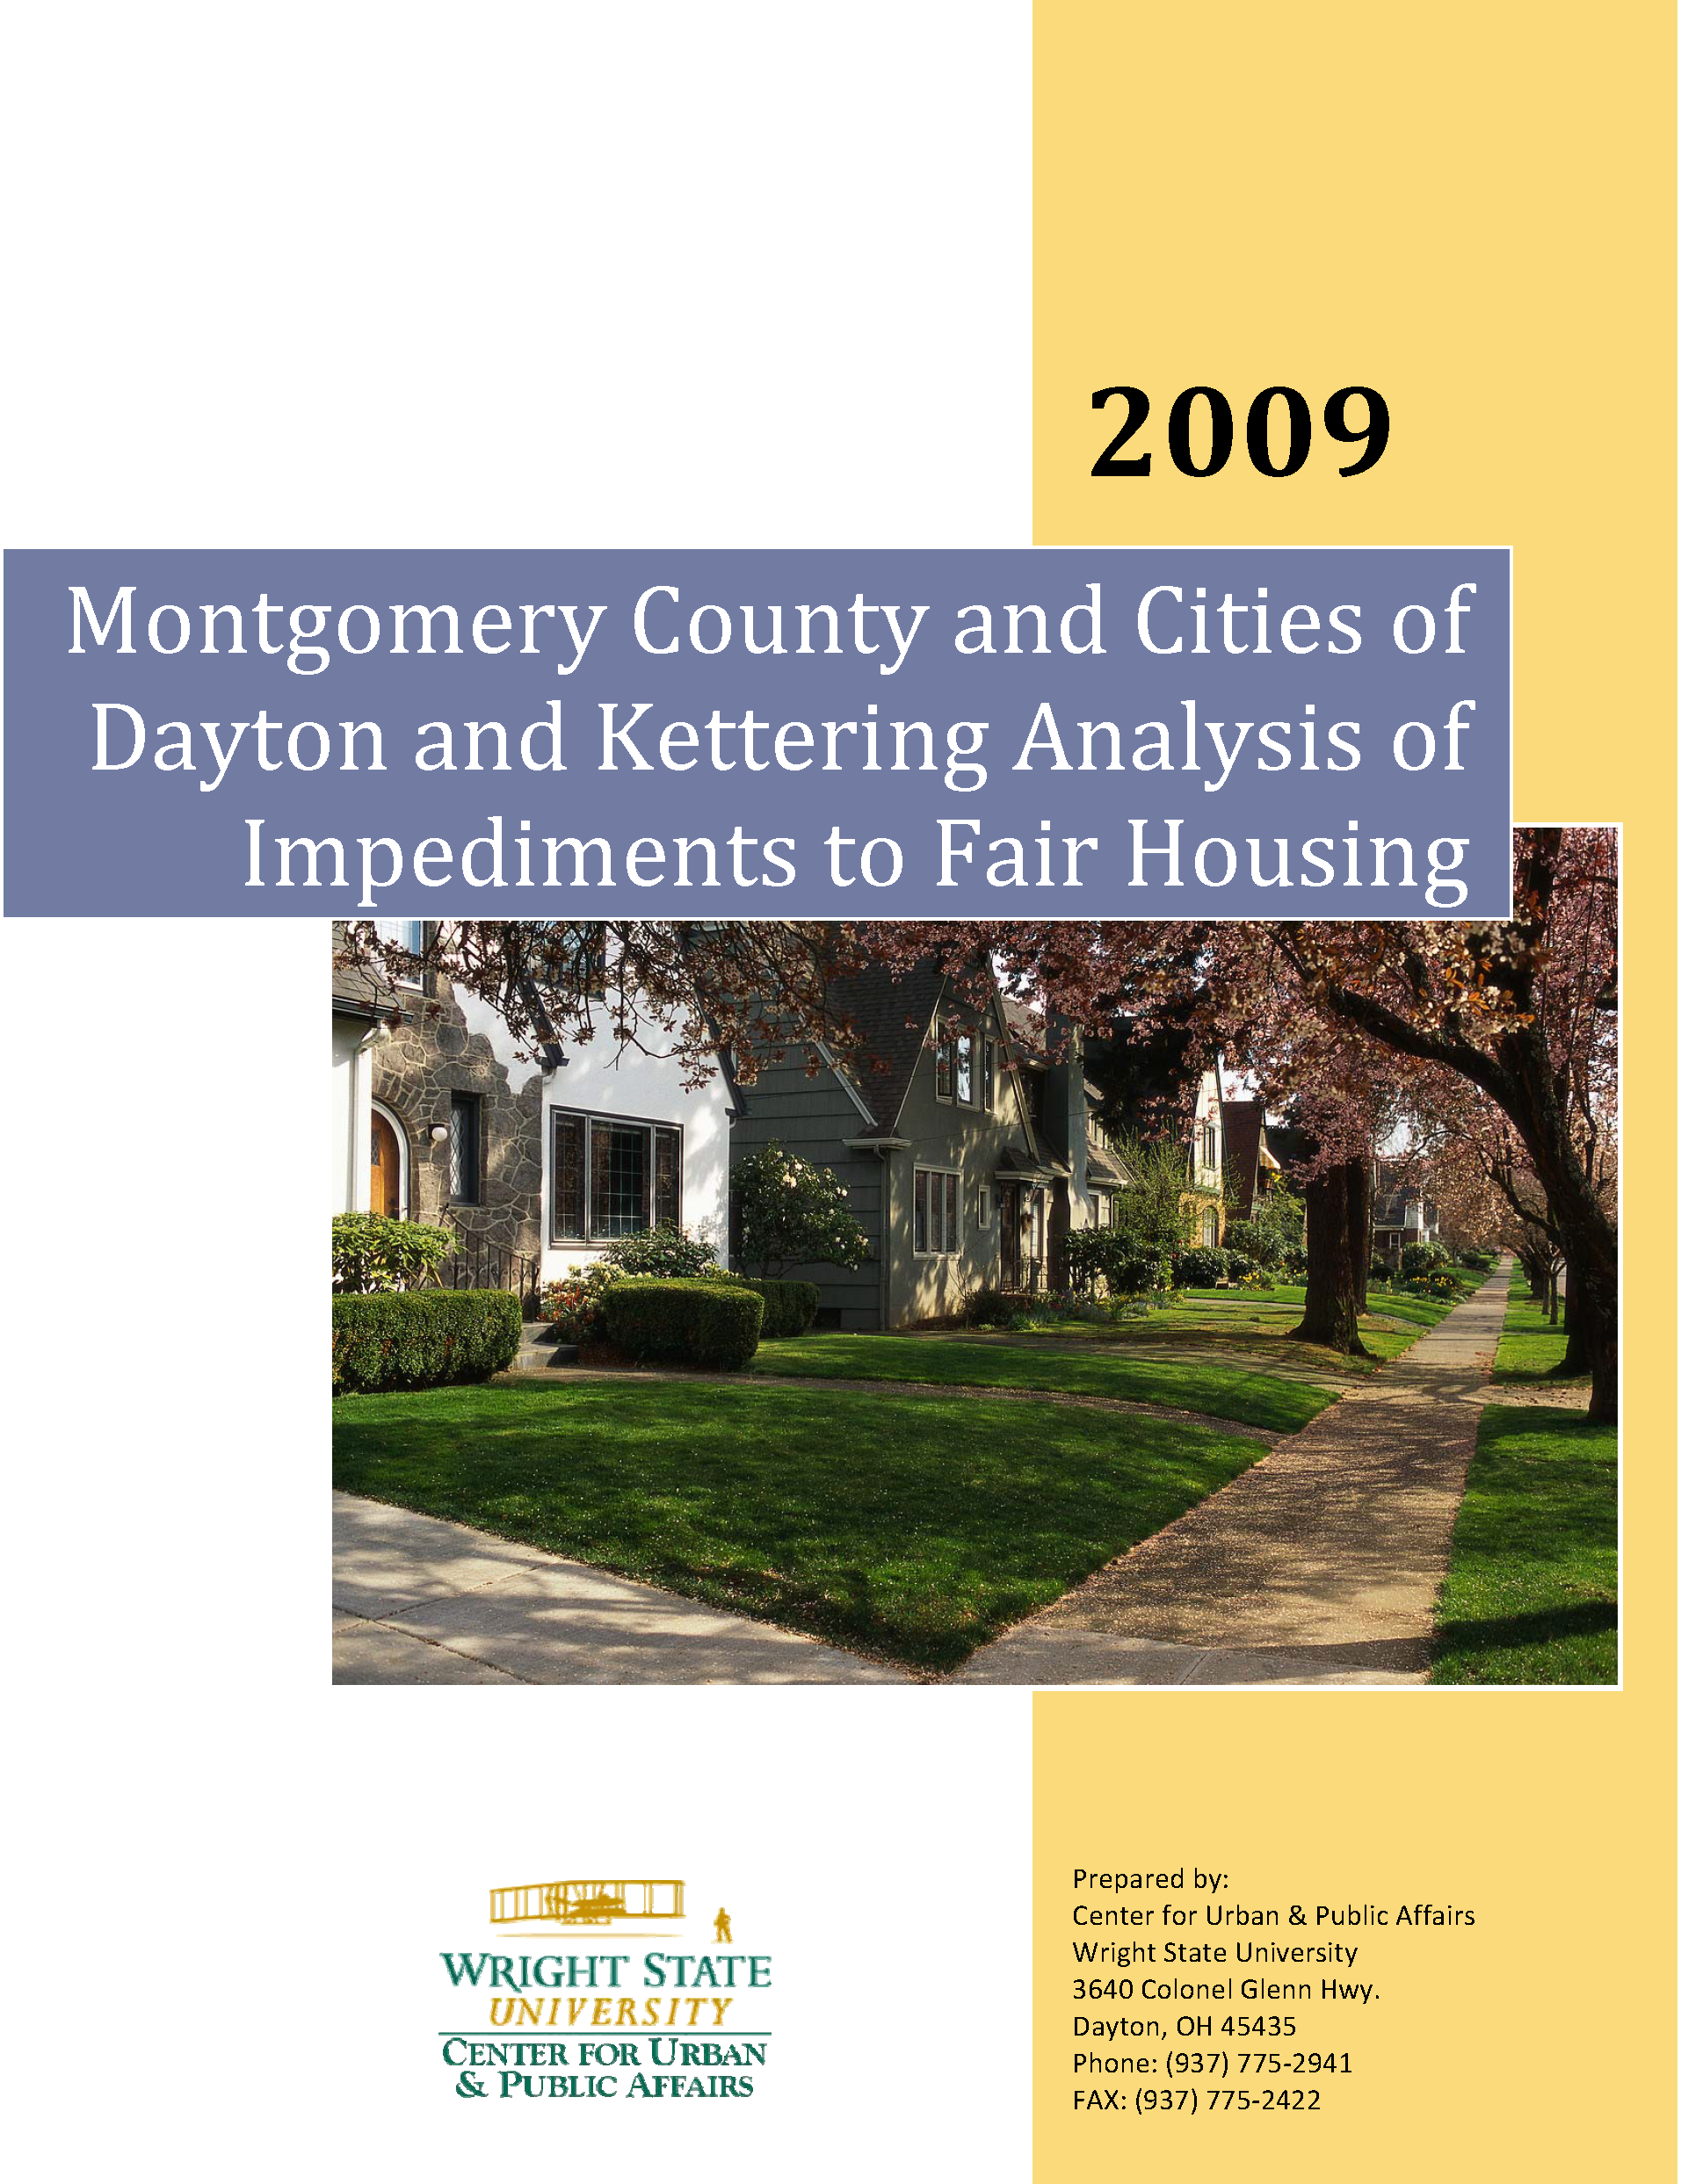 2009_Montgomery_County_and_Cities_of_Dayton_and_Kettering_Analysis_of_Impediments_to_Fair_Housing_COVER.png